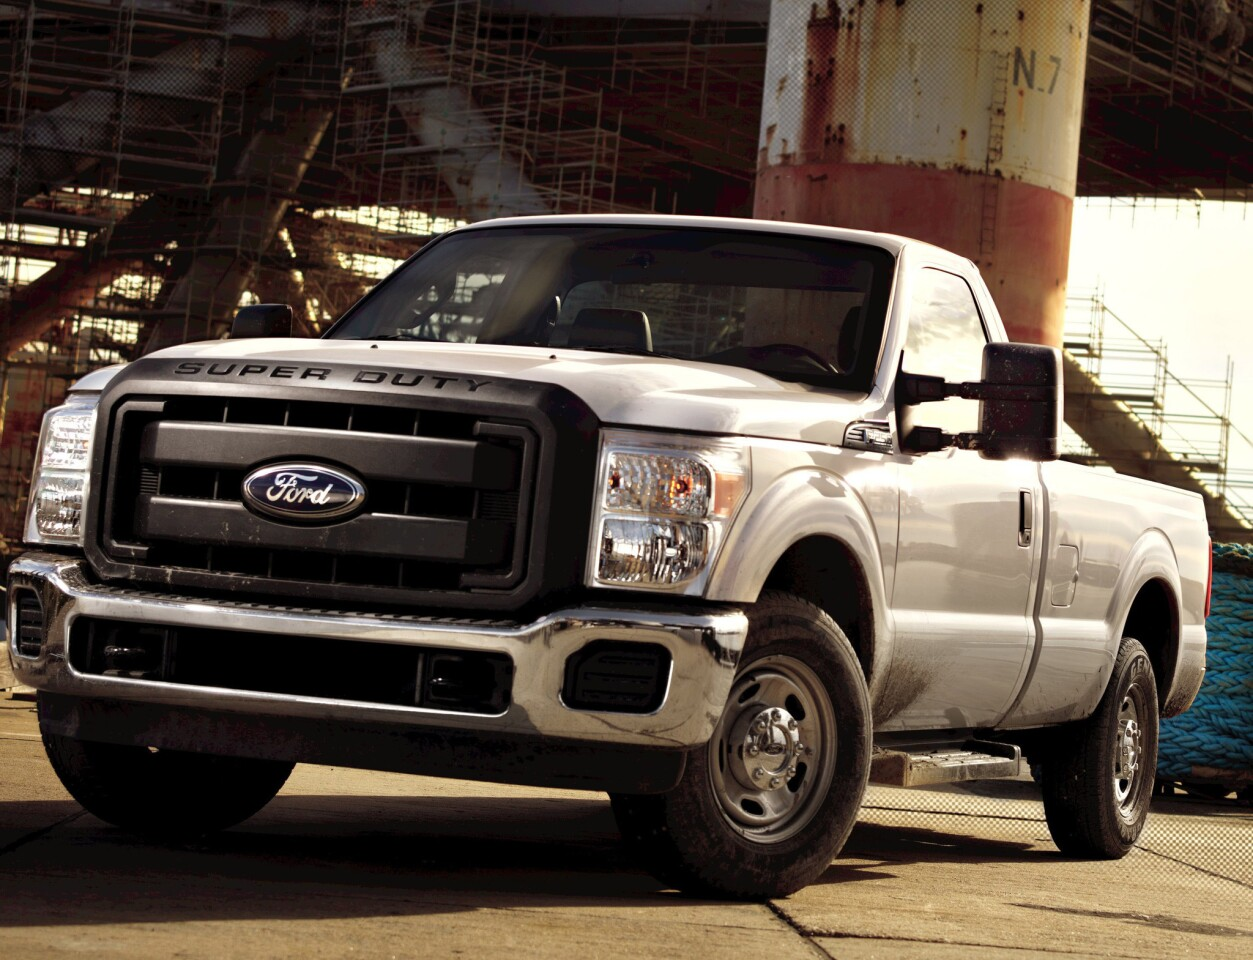 More than 4% of the Ford F-250 Super Duty pickup trucks advertised on the resale market had more than 200,000 miles on the odometer, the most of any vehicle, according to iSeeCars.com, a used-car information site.